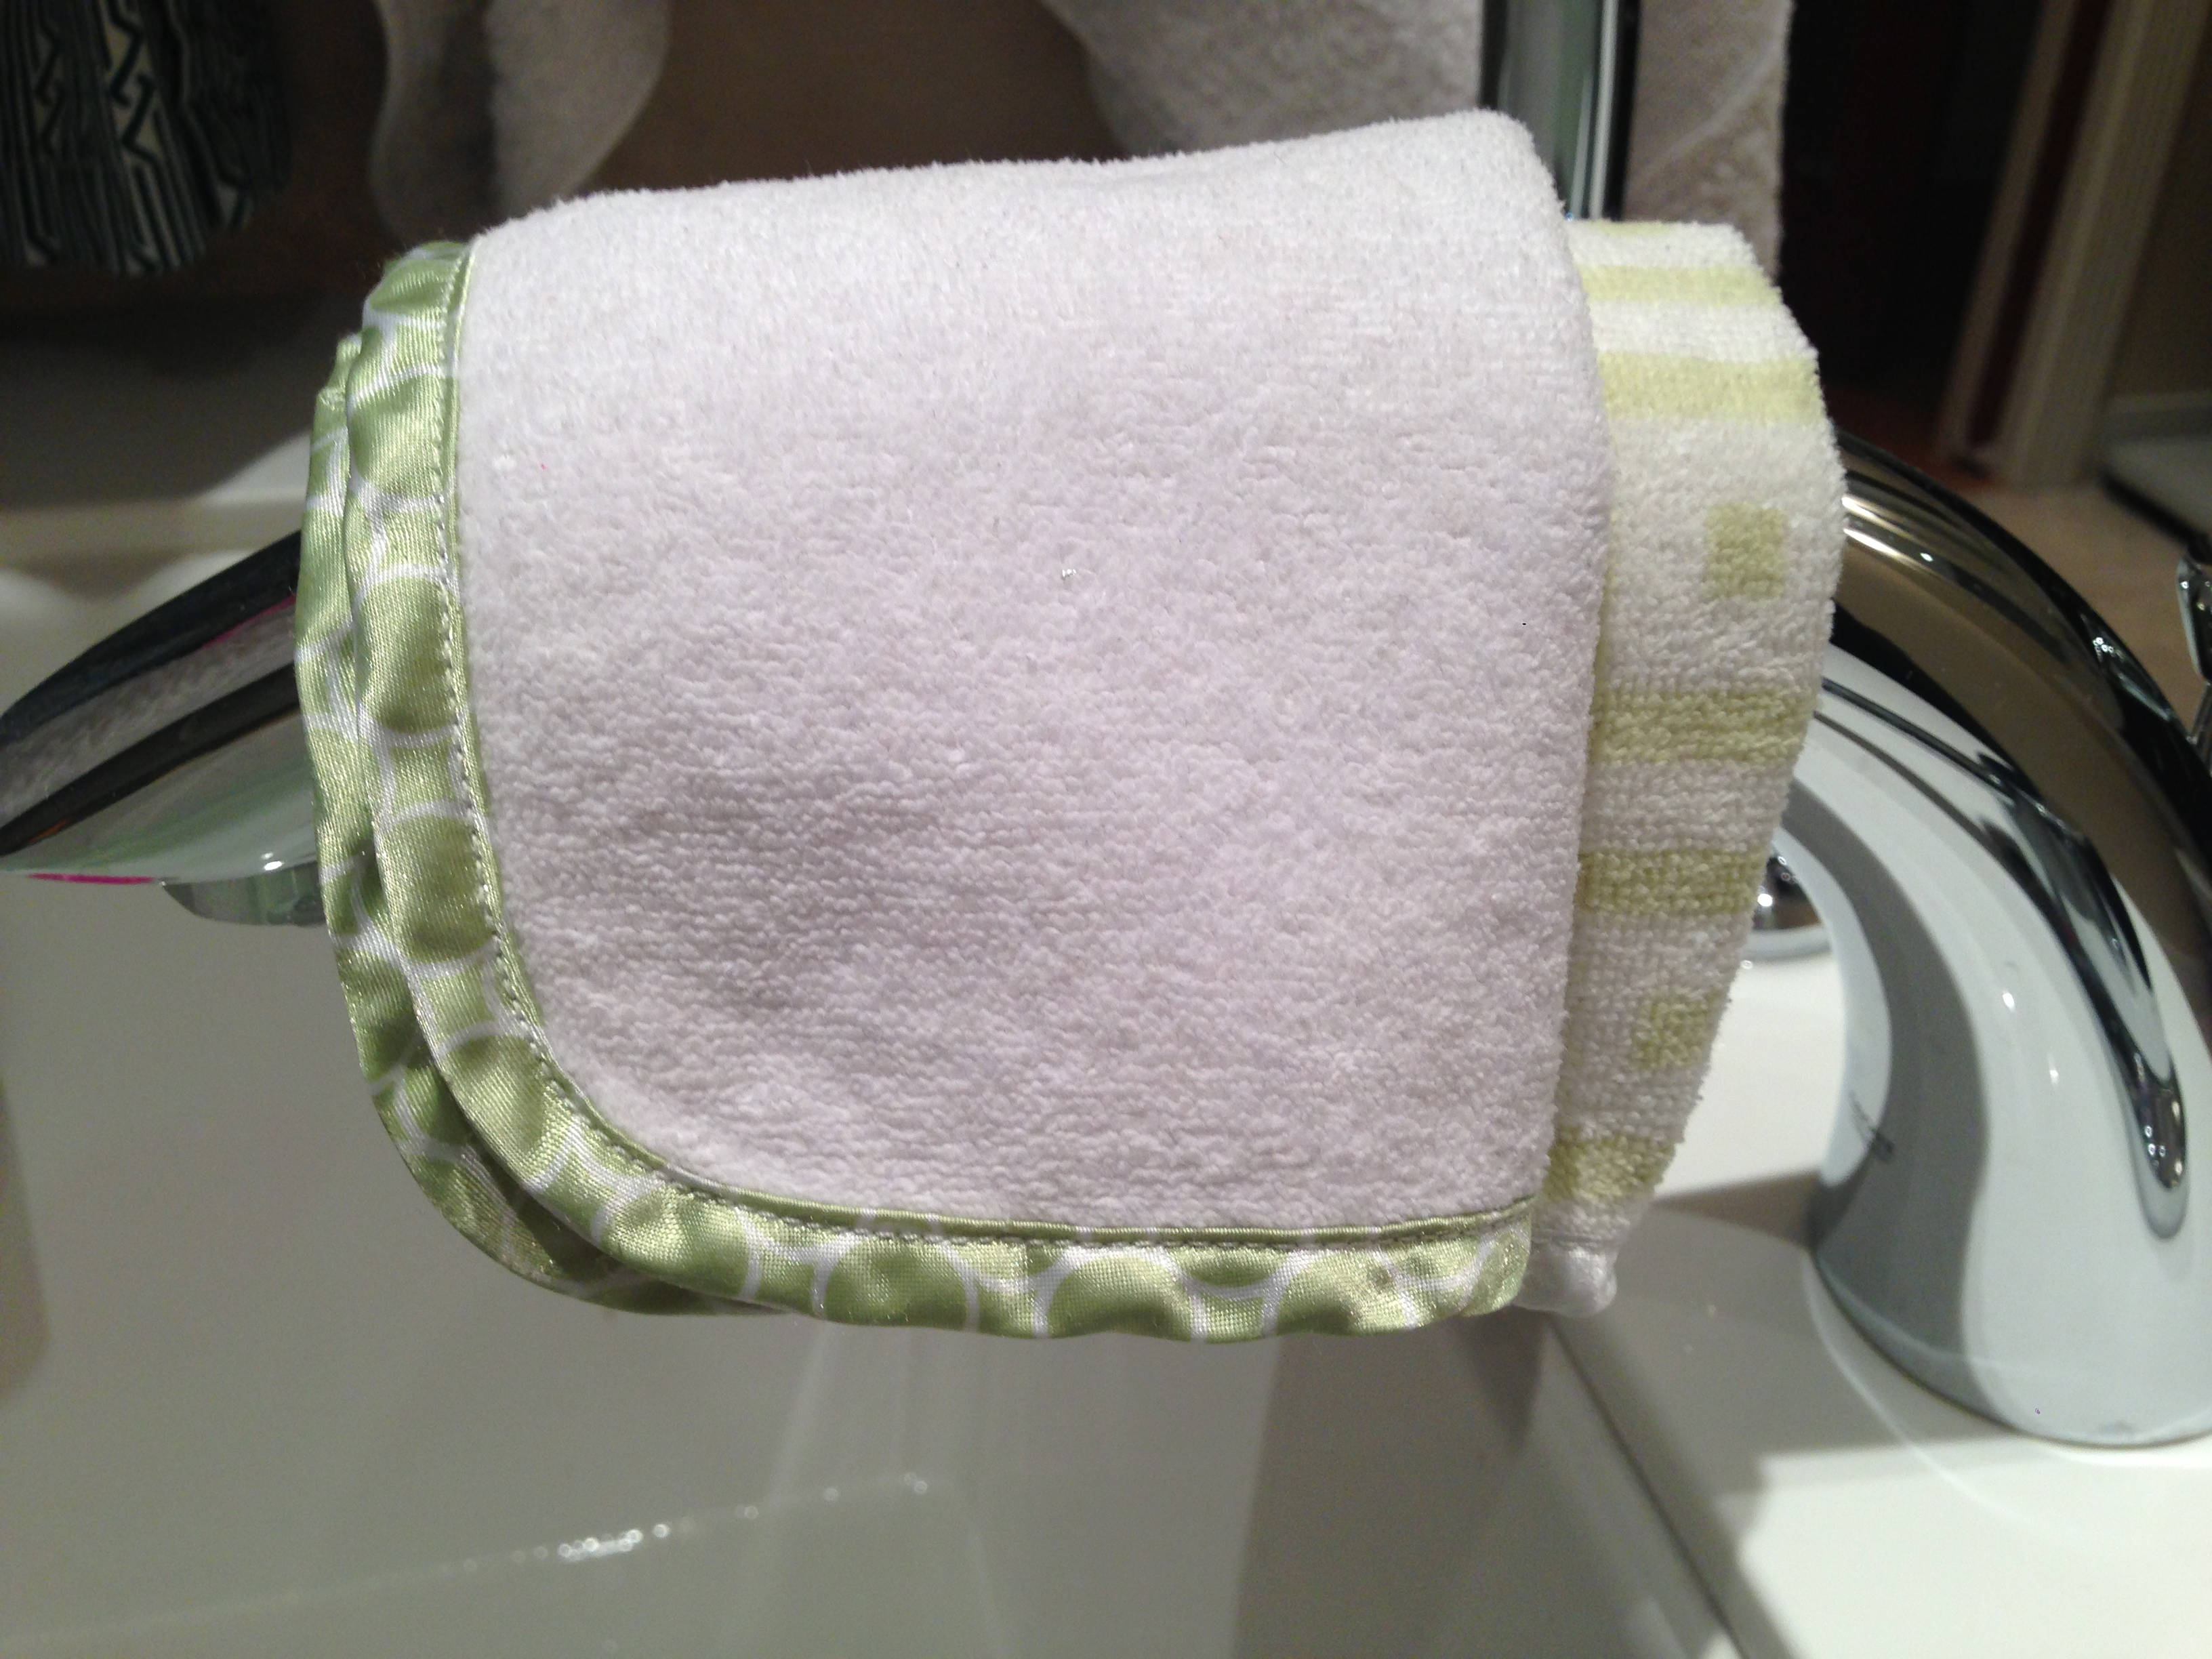 Today's Hint: How to (Frugally) Keep Eyes Dry During Bath Time